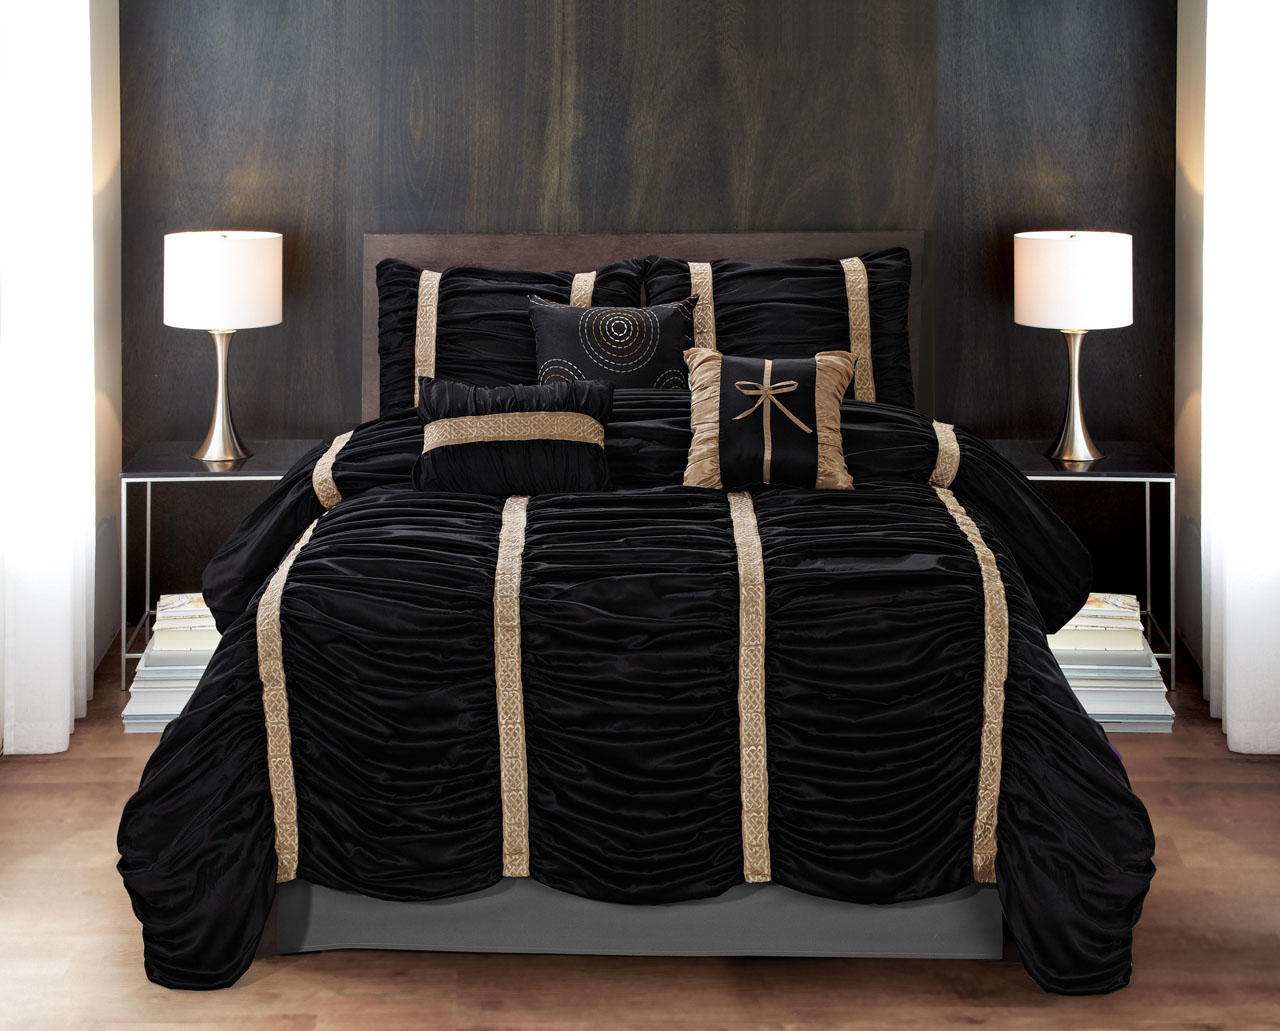 Black And Gold Comforter Set 28 Images Waterford Bannon Comforter Set Gold Black Black And